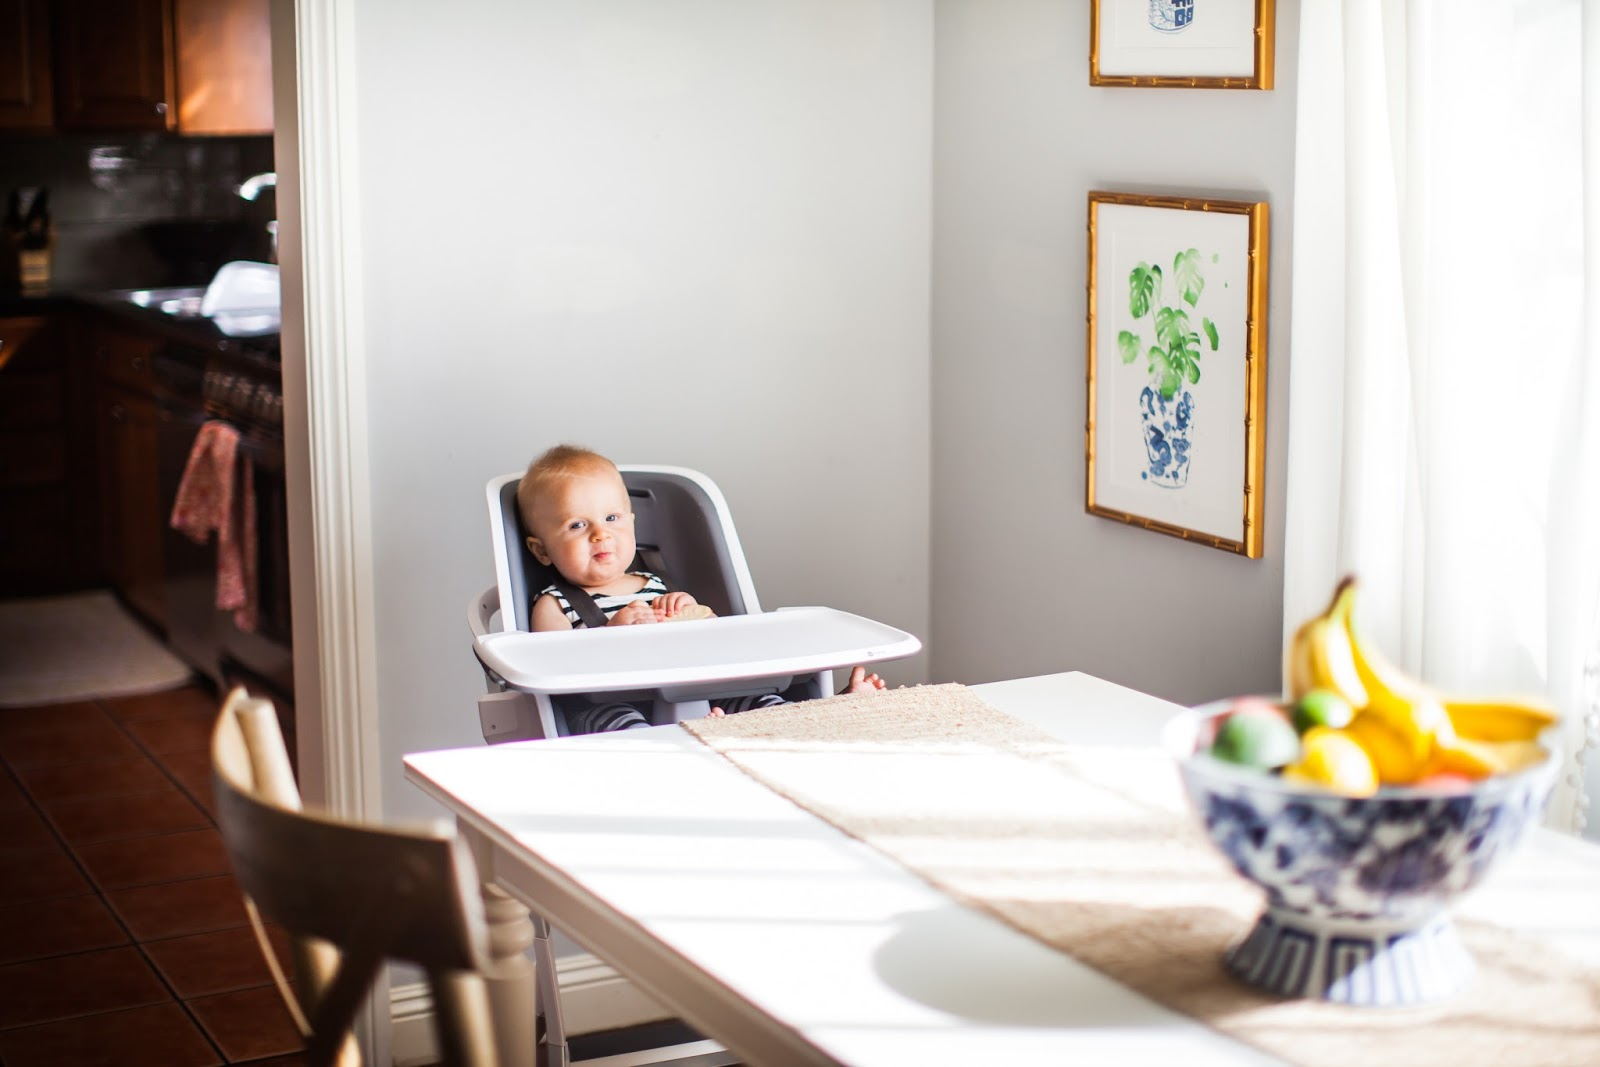 4moms high chair review throne chairs mealtime made easy 43 a giveaway elle apparel by leanne